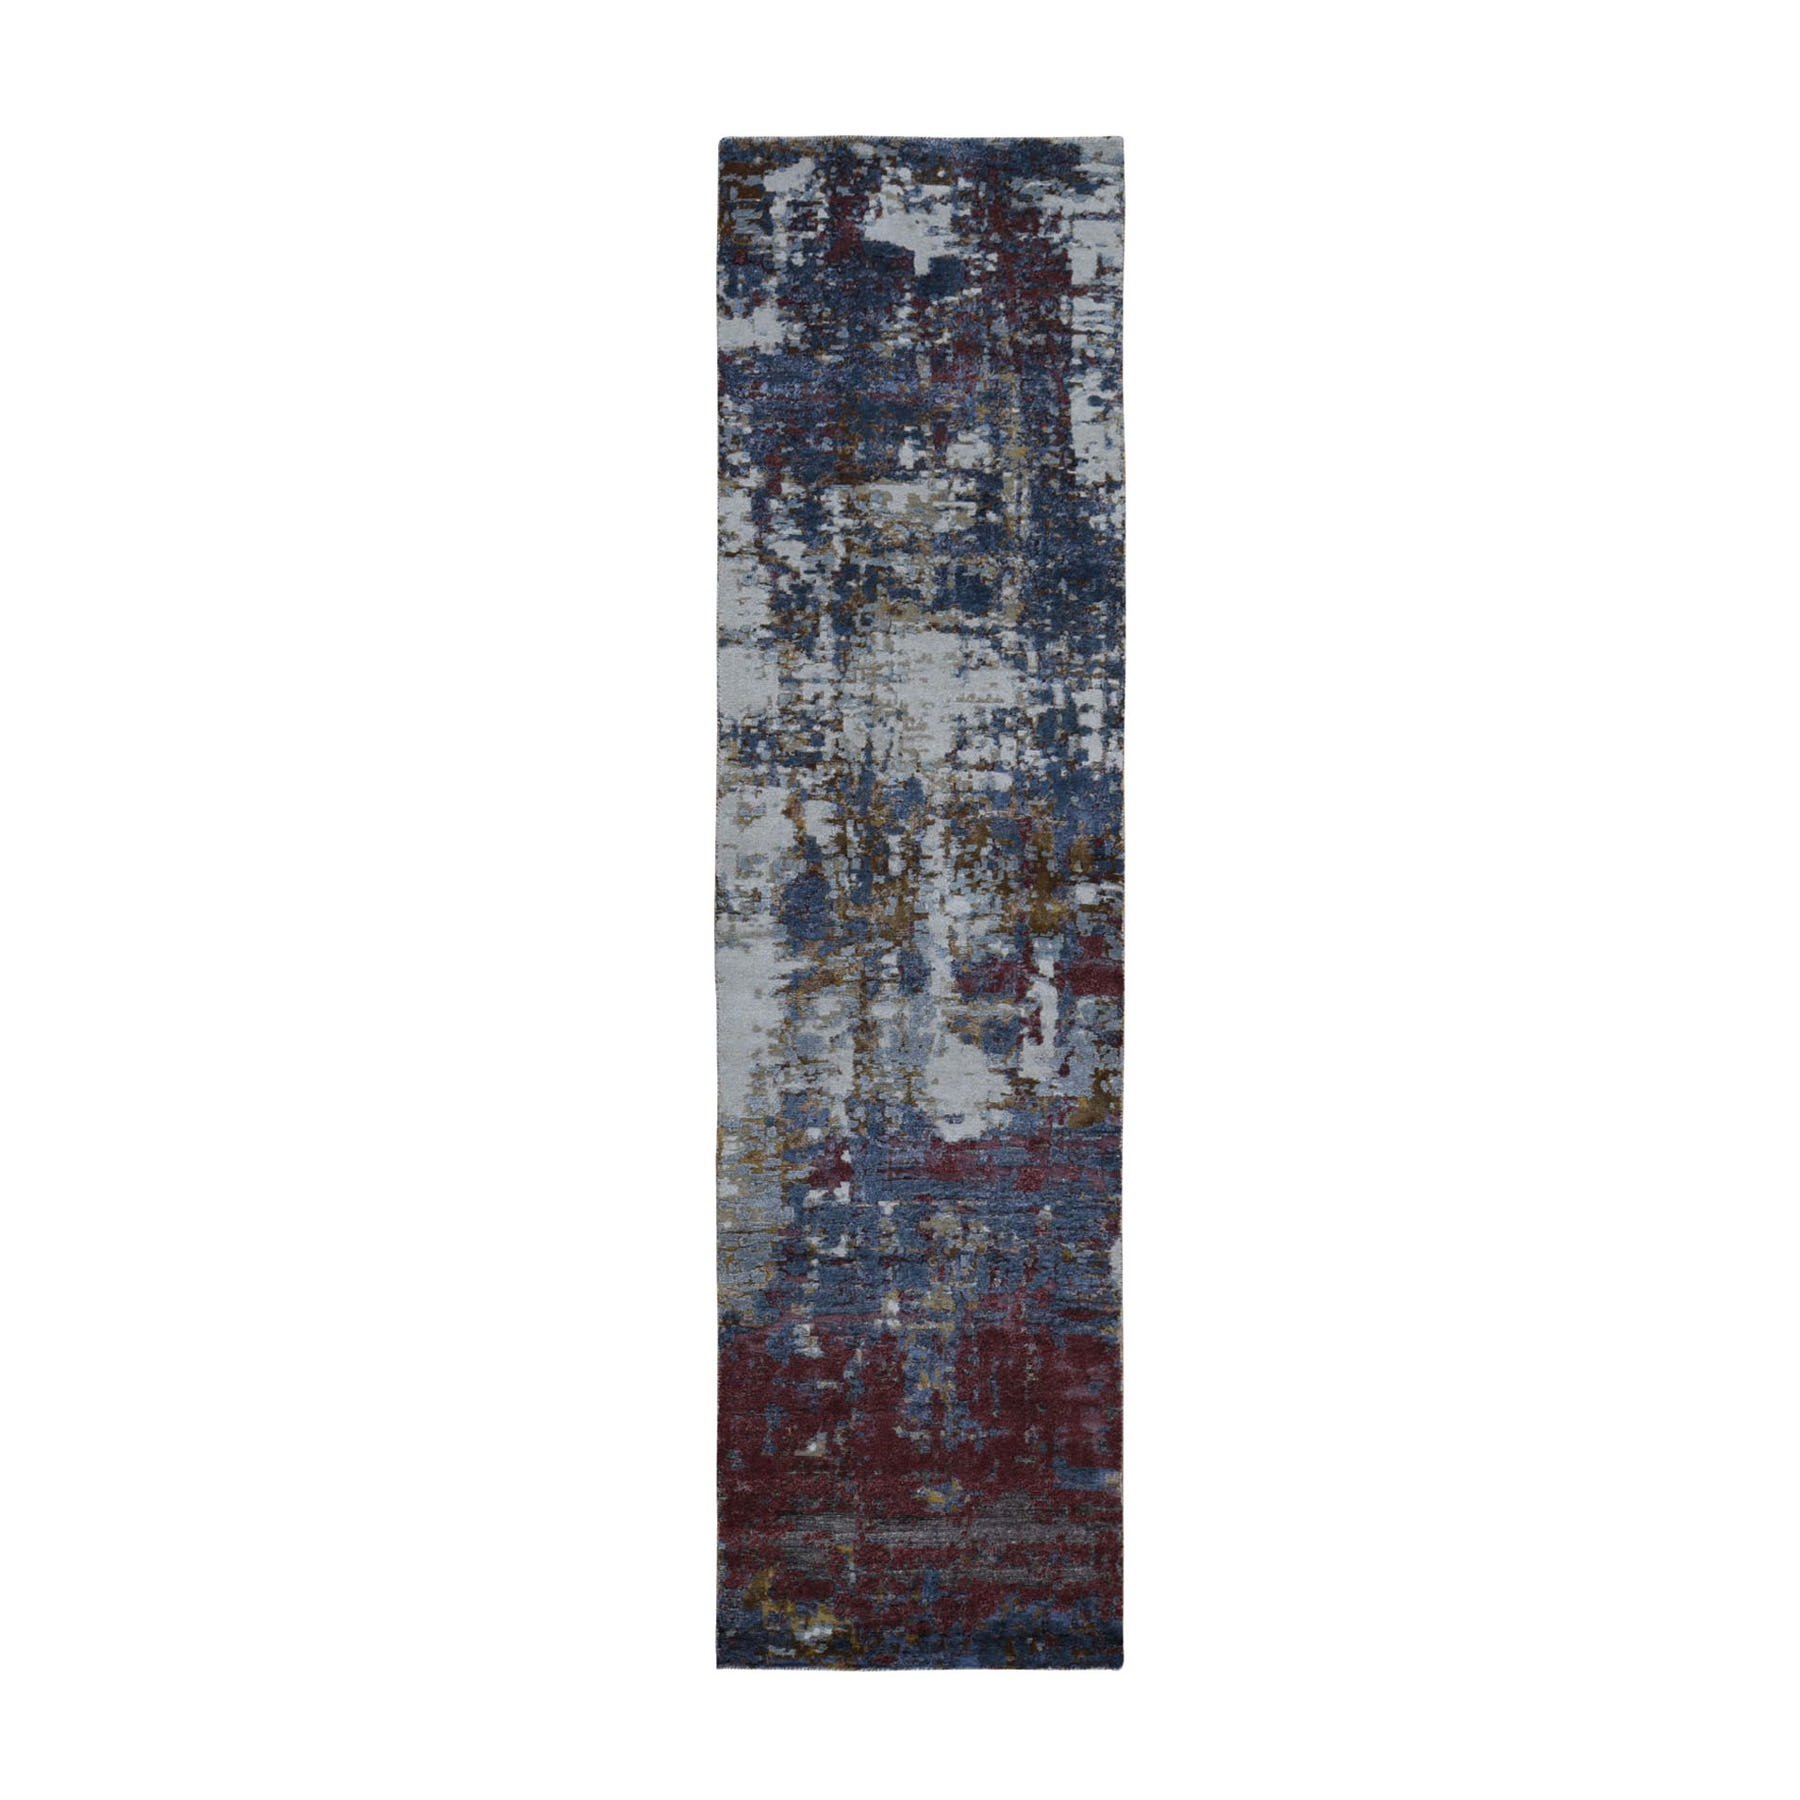 2-7 x8-1  Red Wool and Silk Hi-Low Pile Modern Abstract Design Hand Knotted Oriental Rug